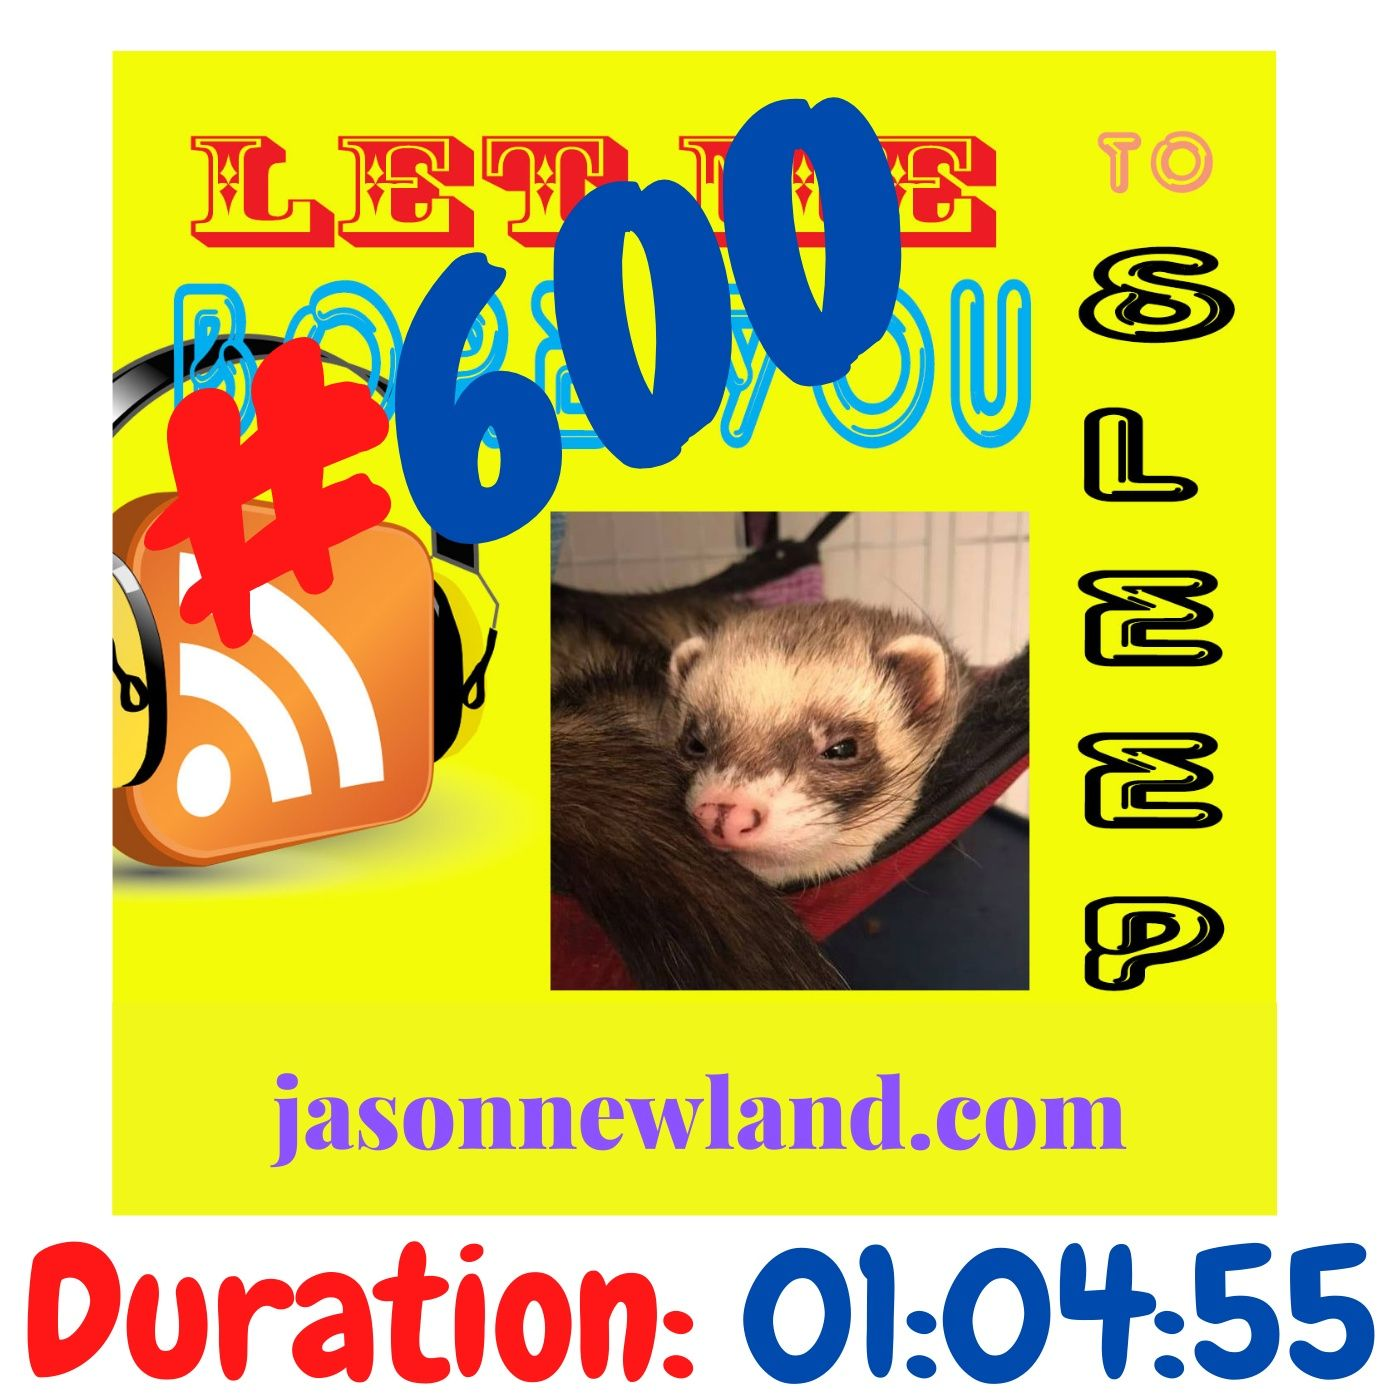 "#600 Let me bore you to sleep ""600th episode LIVE ON FACEBOOK"" - Jason Newland (21st February 2021)"